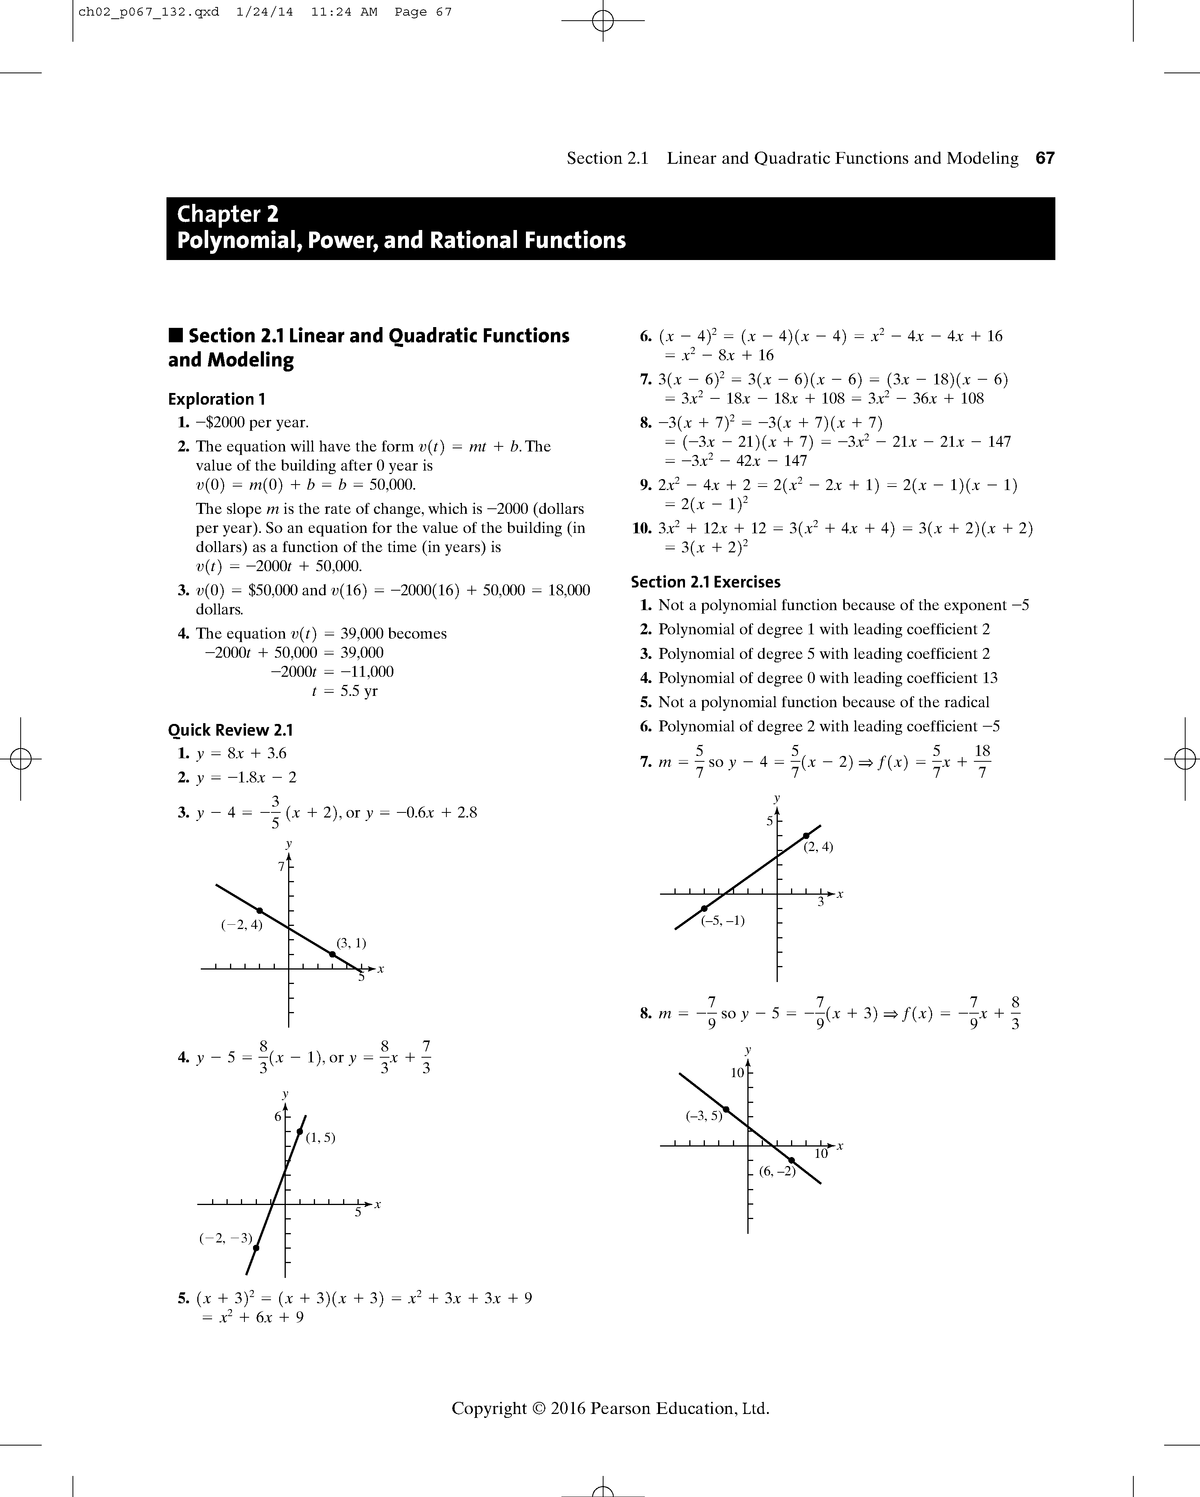 Chapter 2 - Solution manual Precalculus: Graphical Numerical